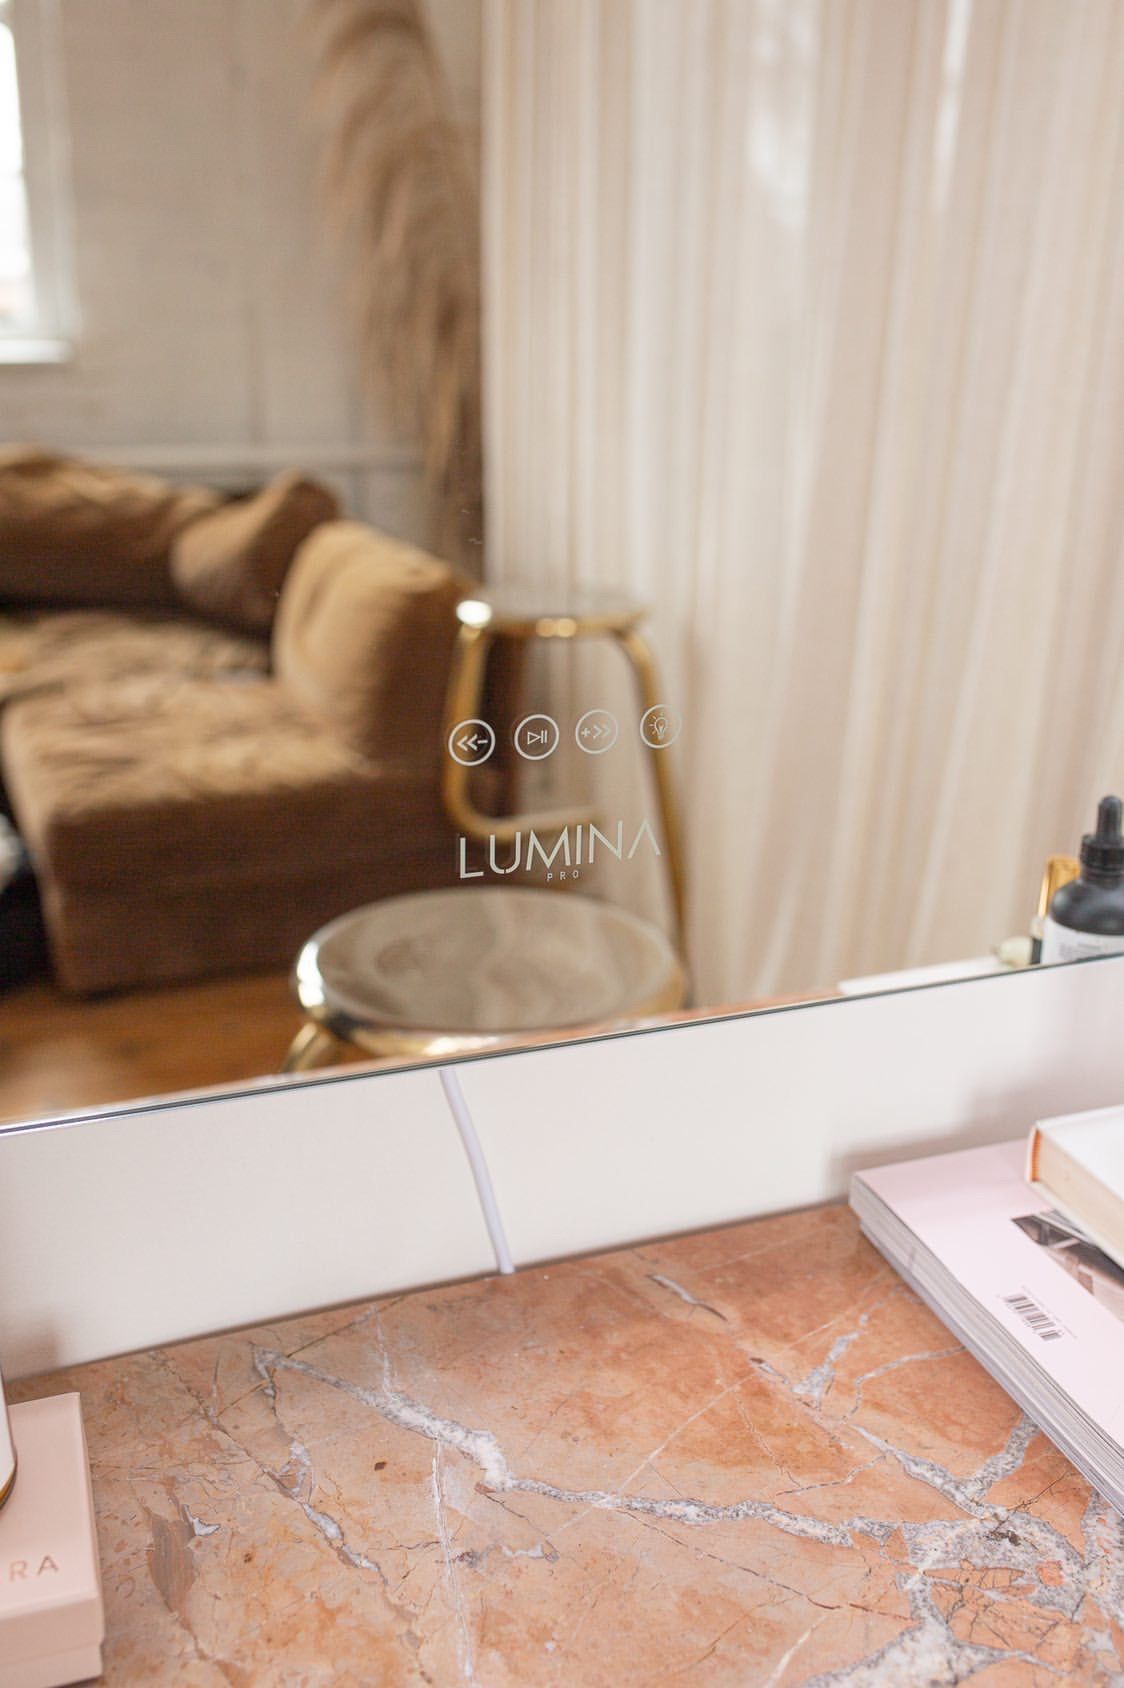 Best Hollywood vanity mirror for makeup with Bluetooth